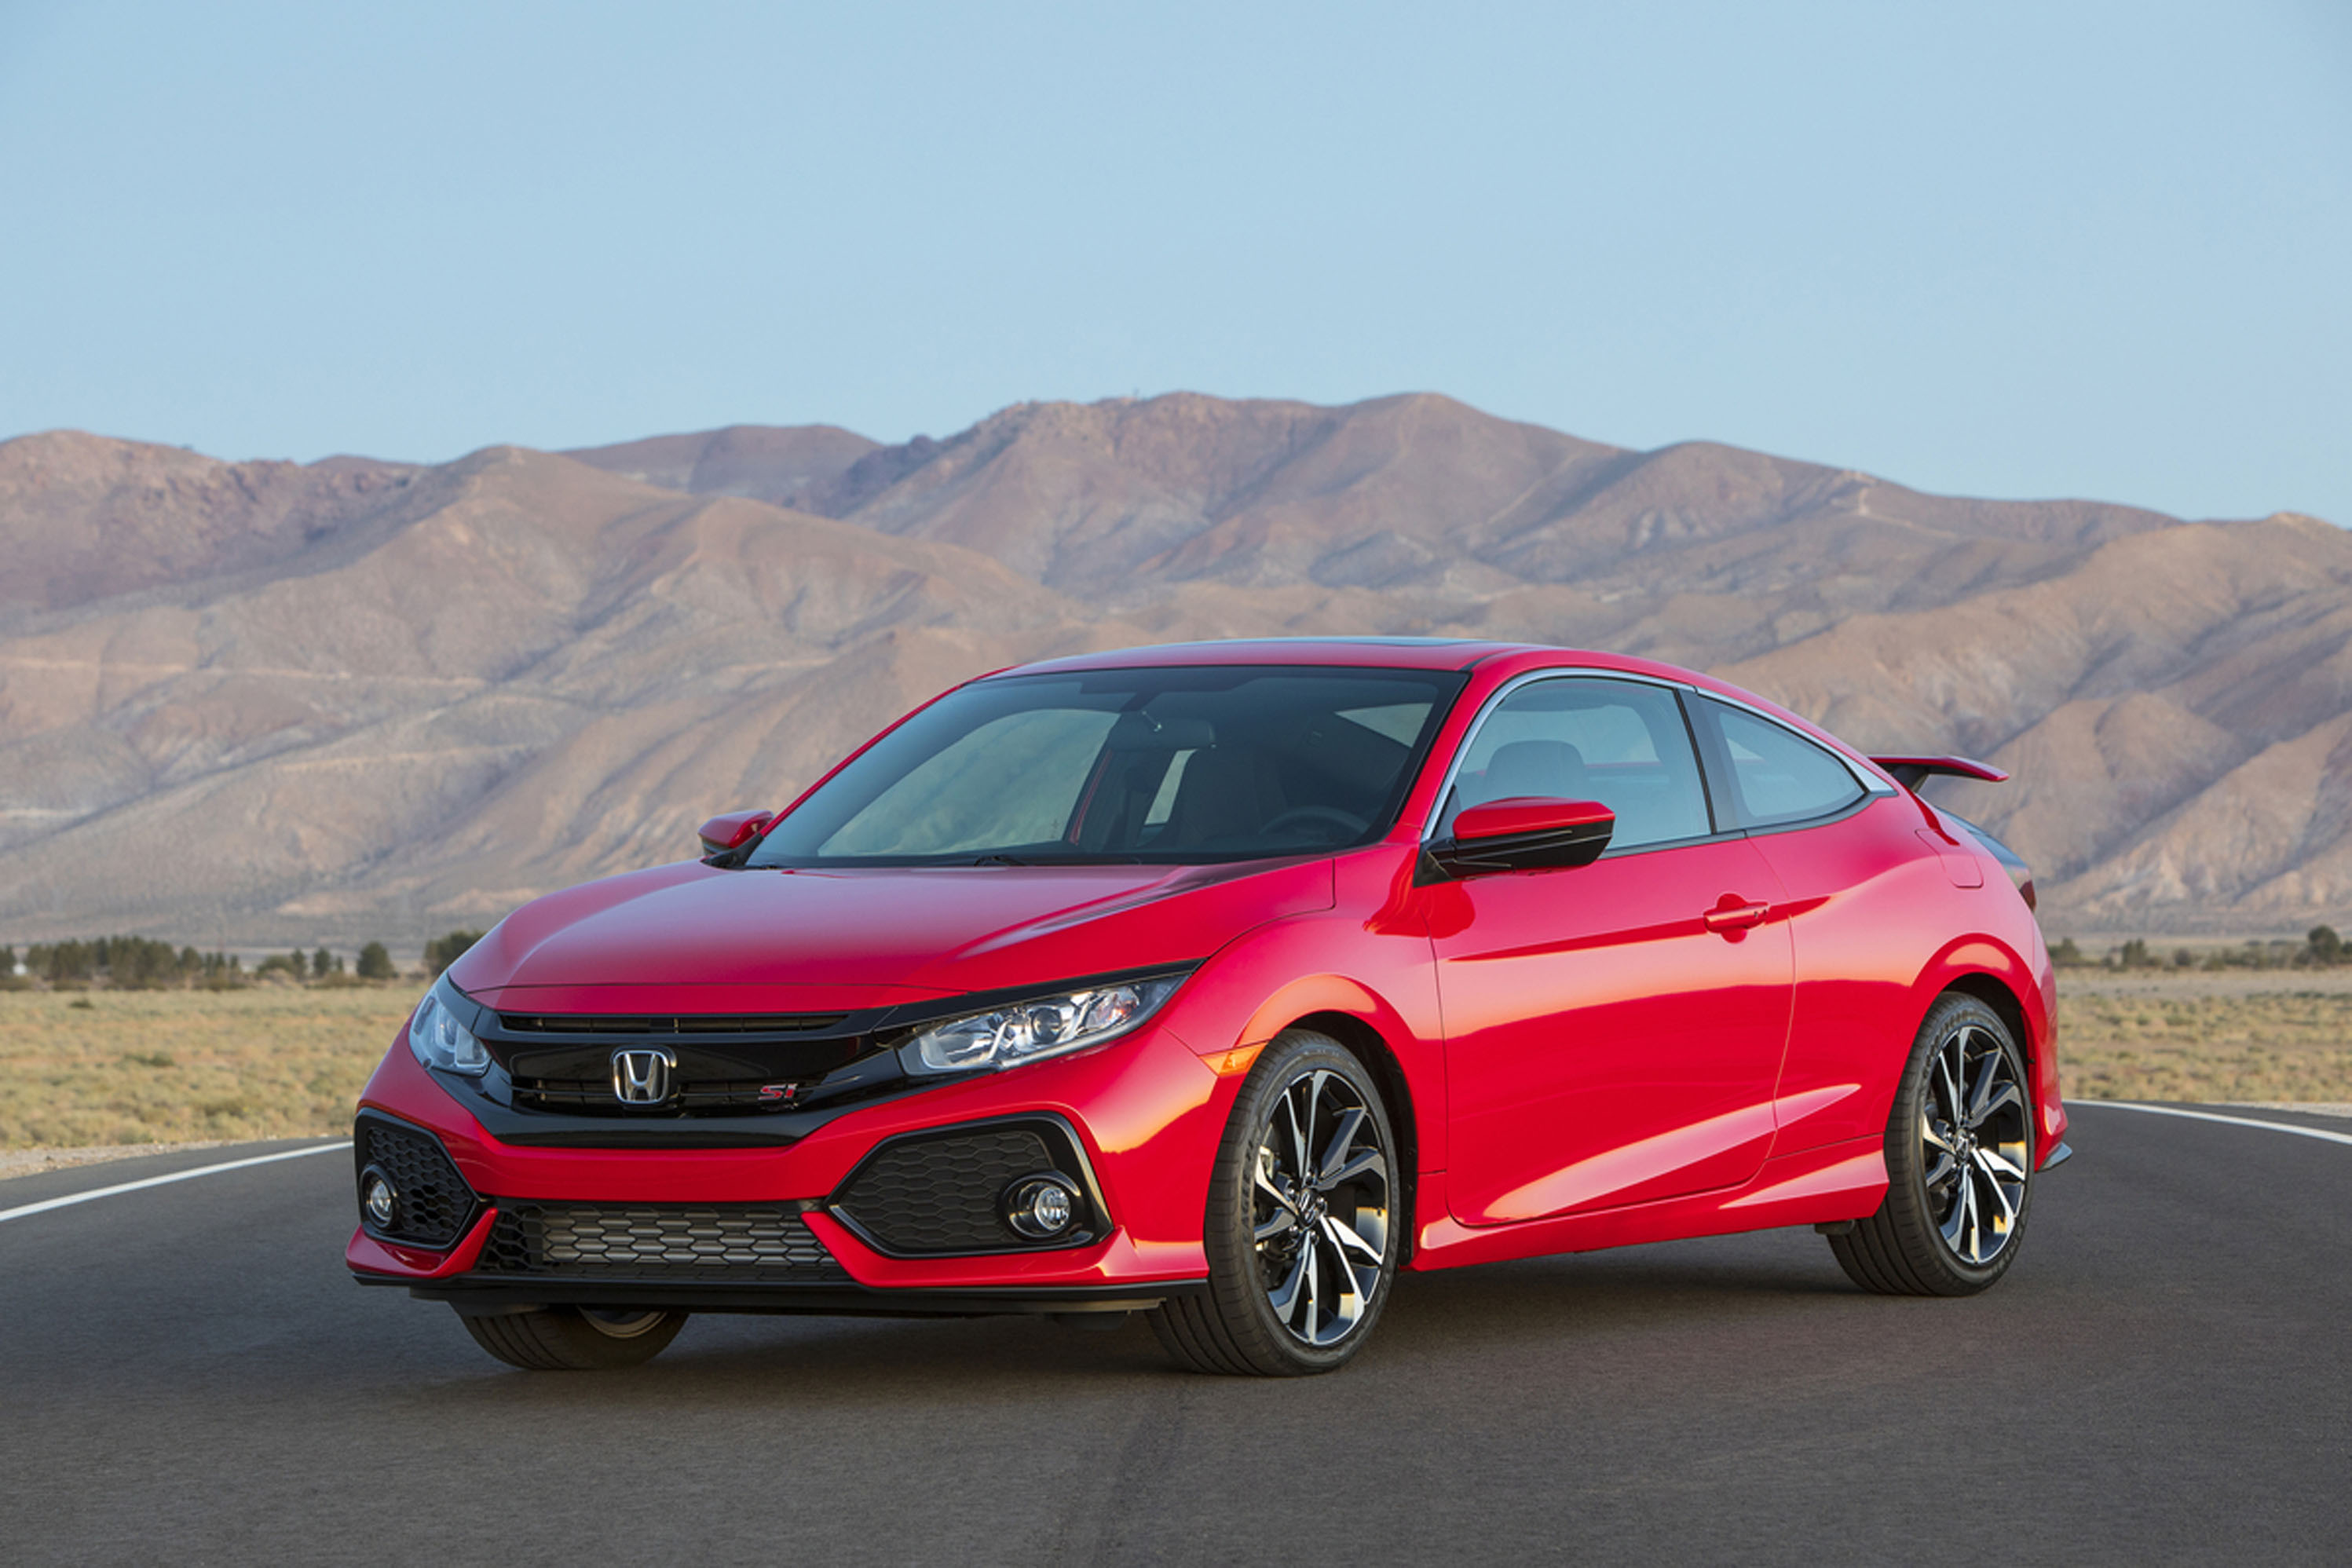 2019 honda civic review ratings specs prices and photos the car connection 2019 honda civic review ratings specs prices and photos the car connection